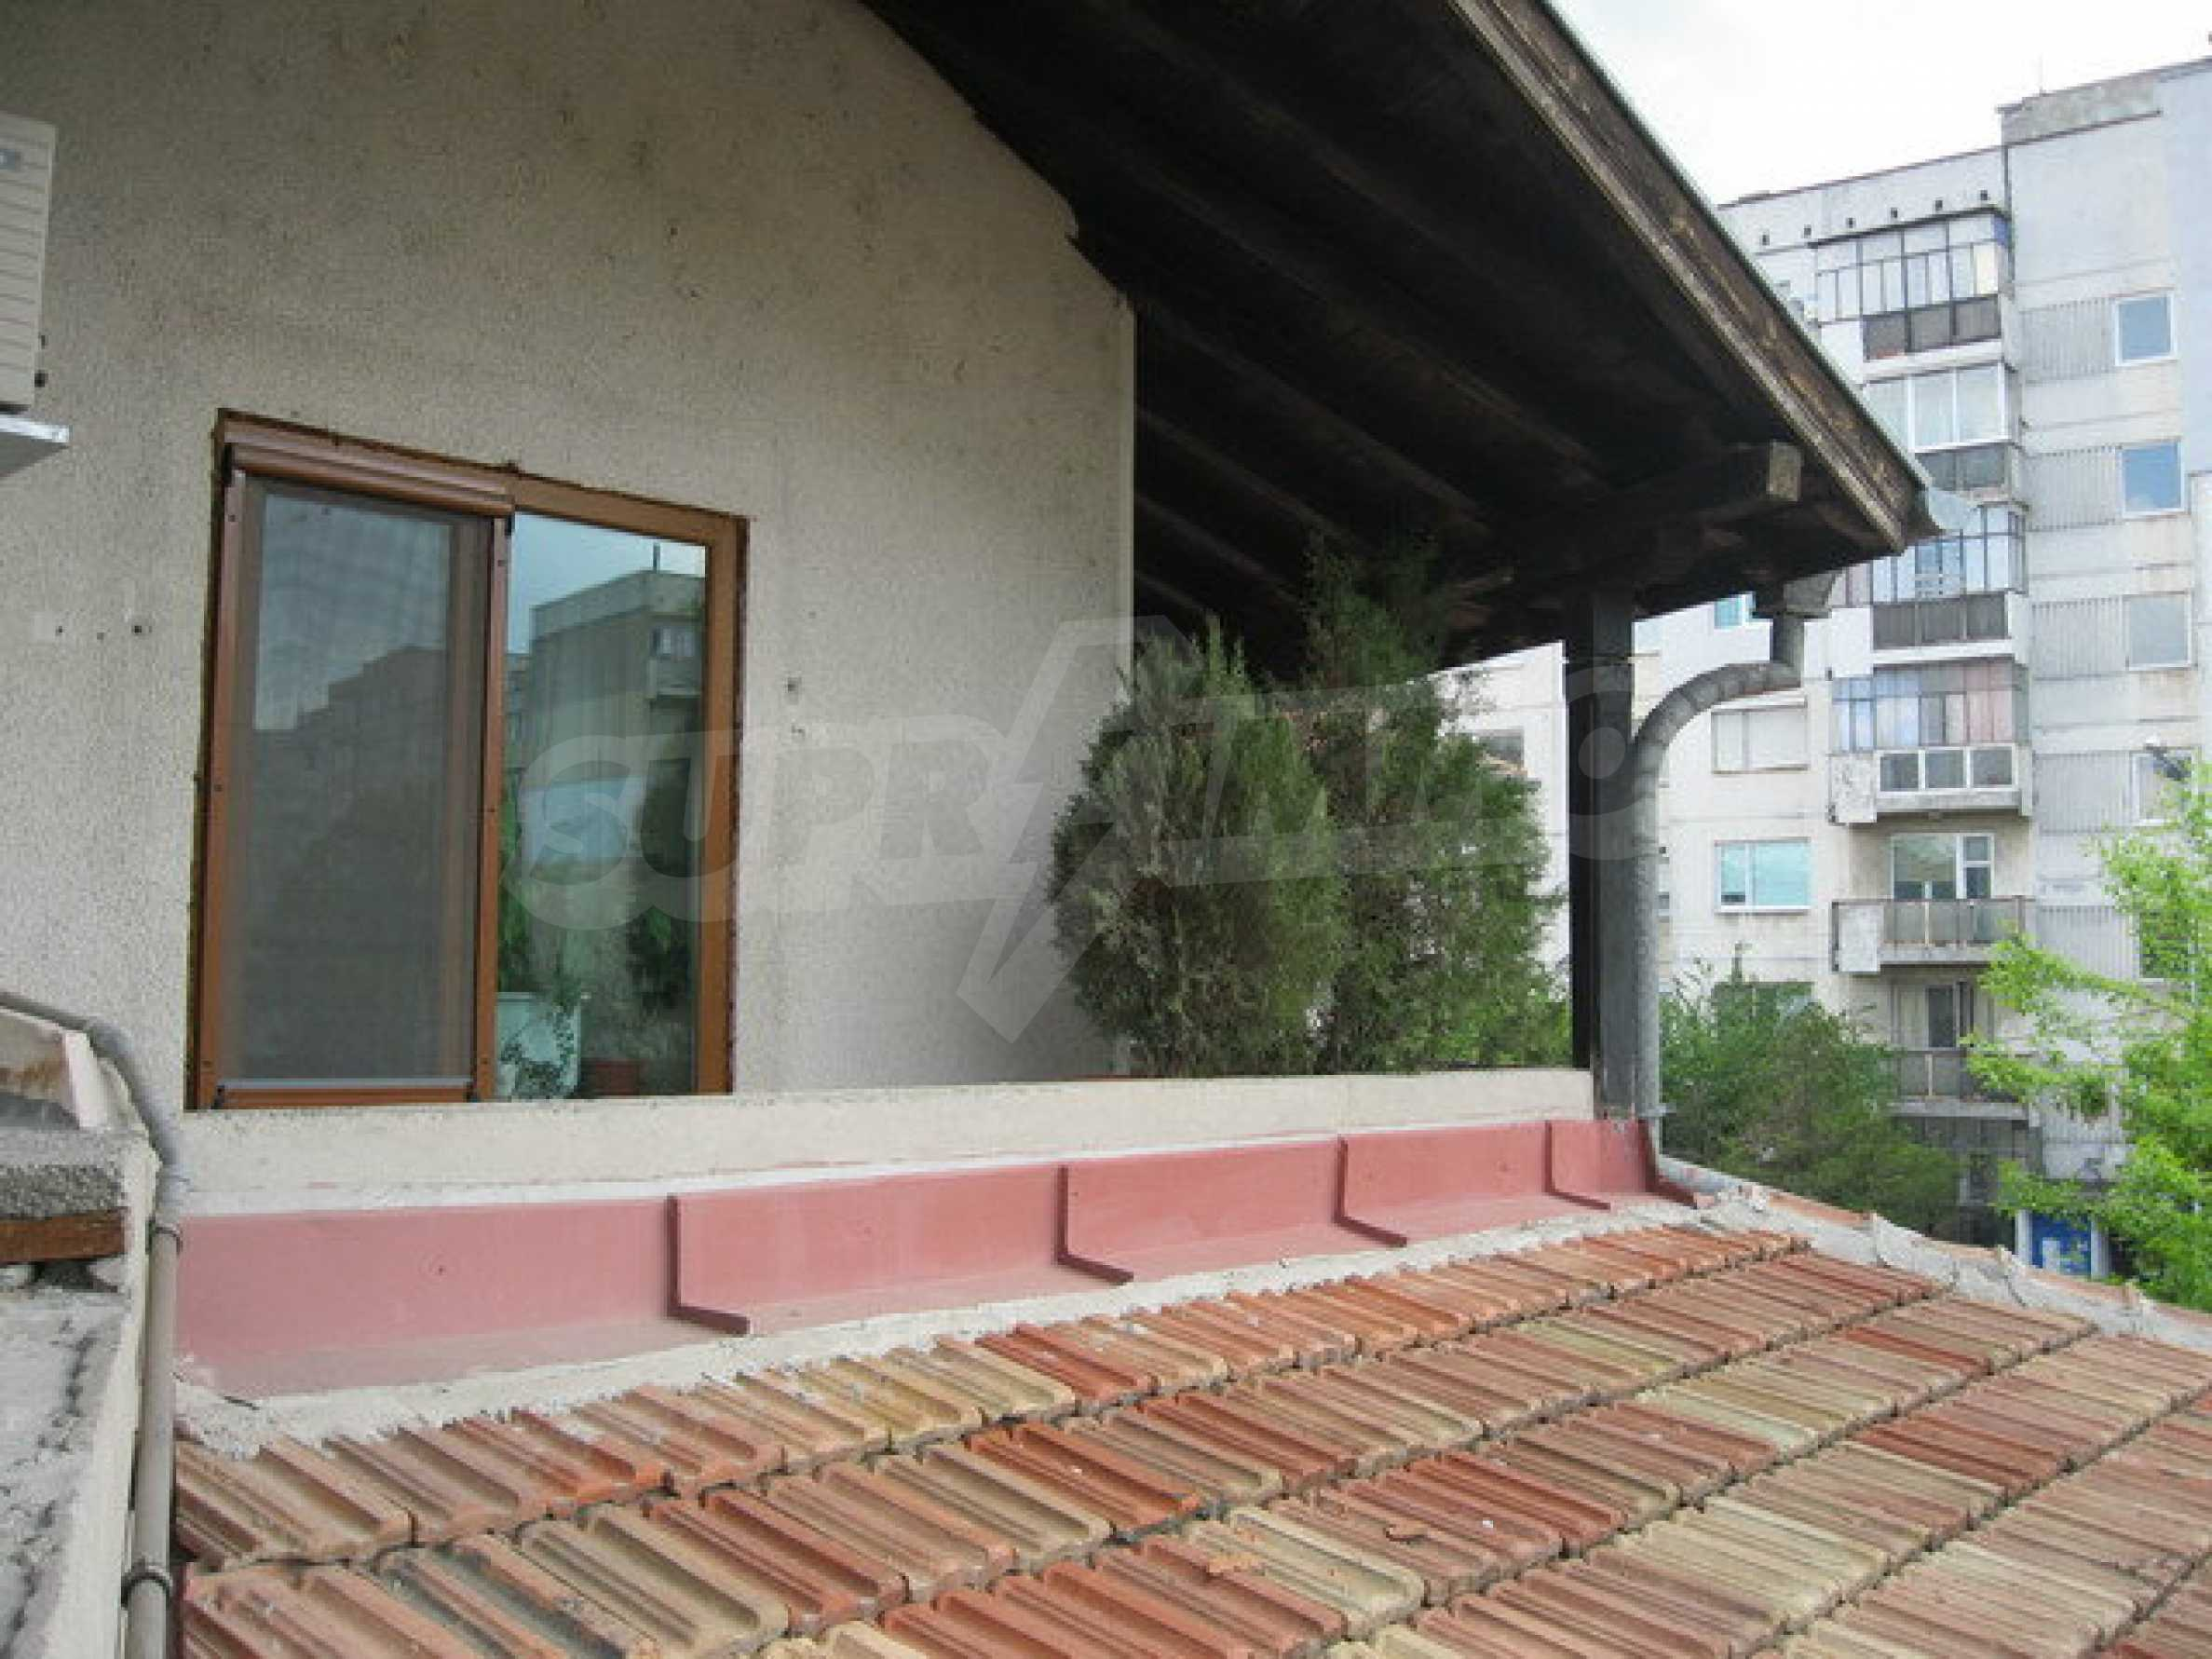 Commercial property on 3 levels for sale in Veliko Tarnovo  27